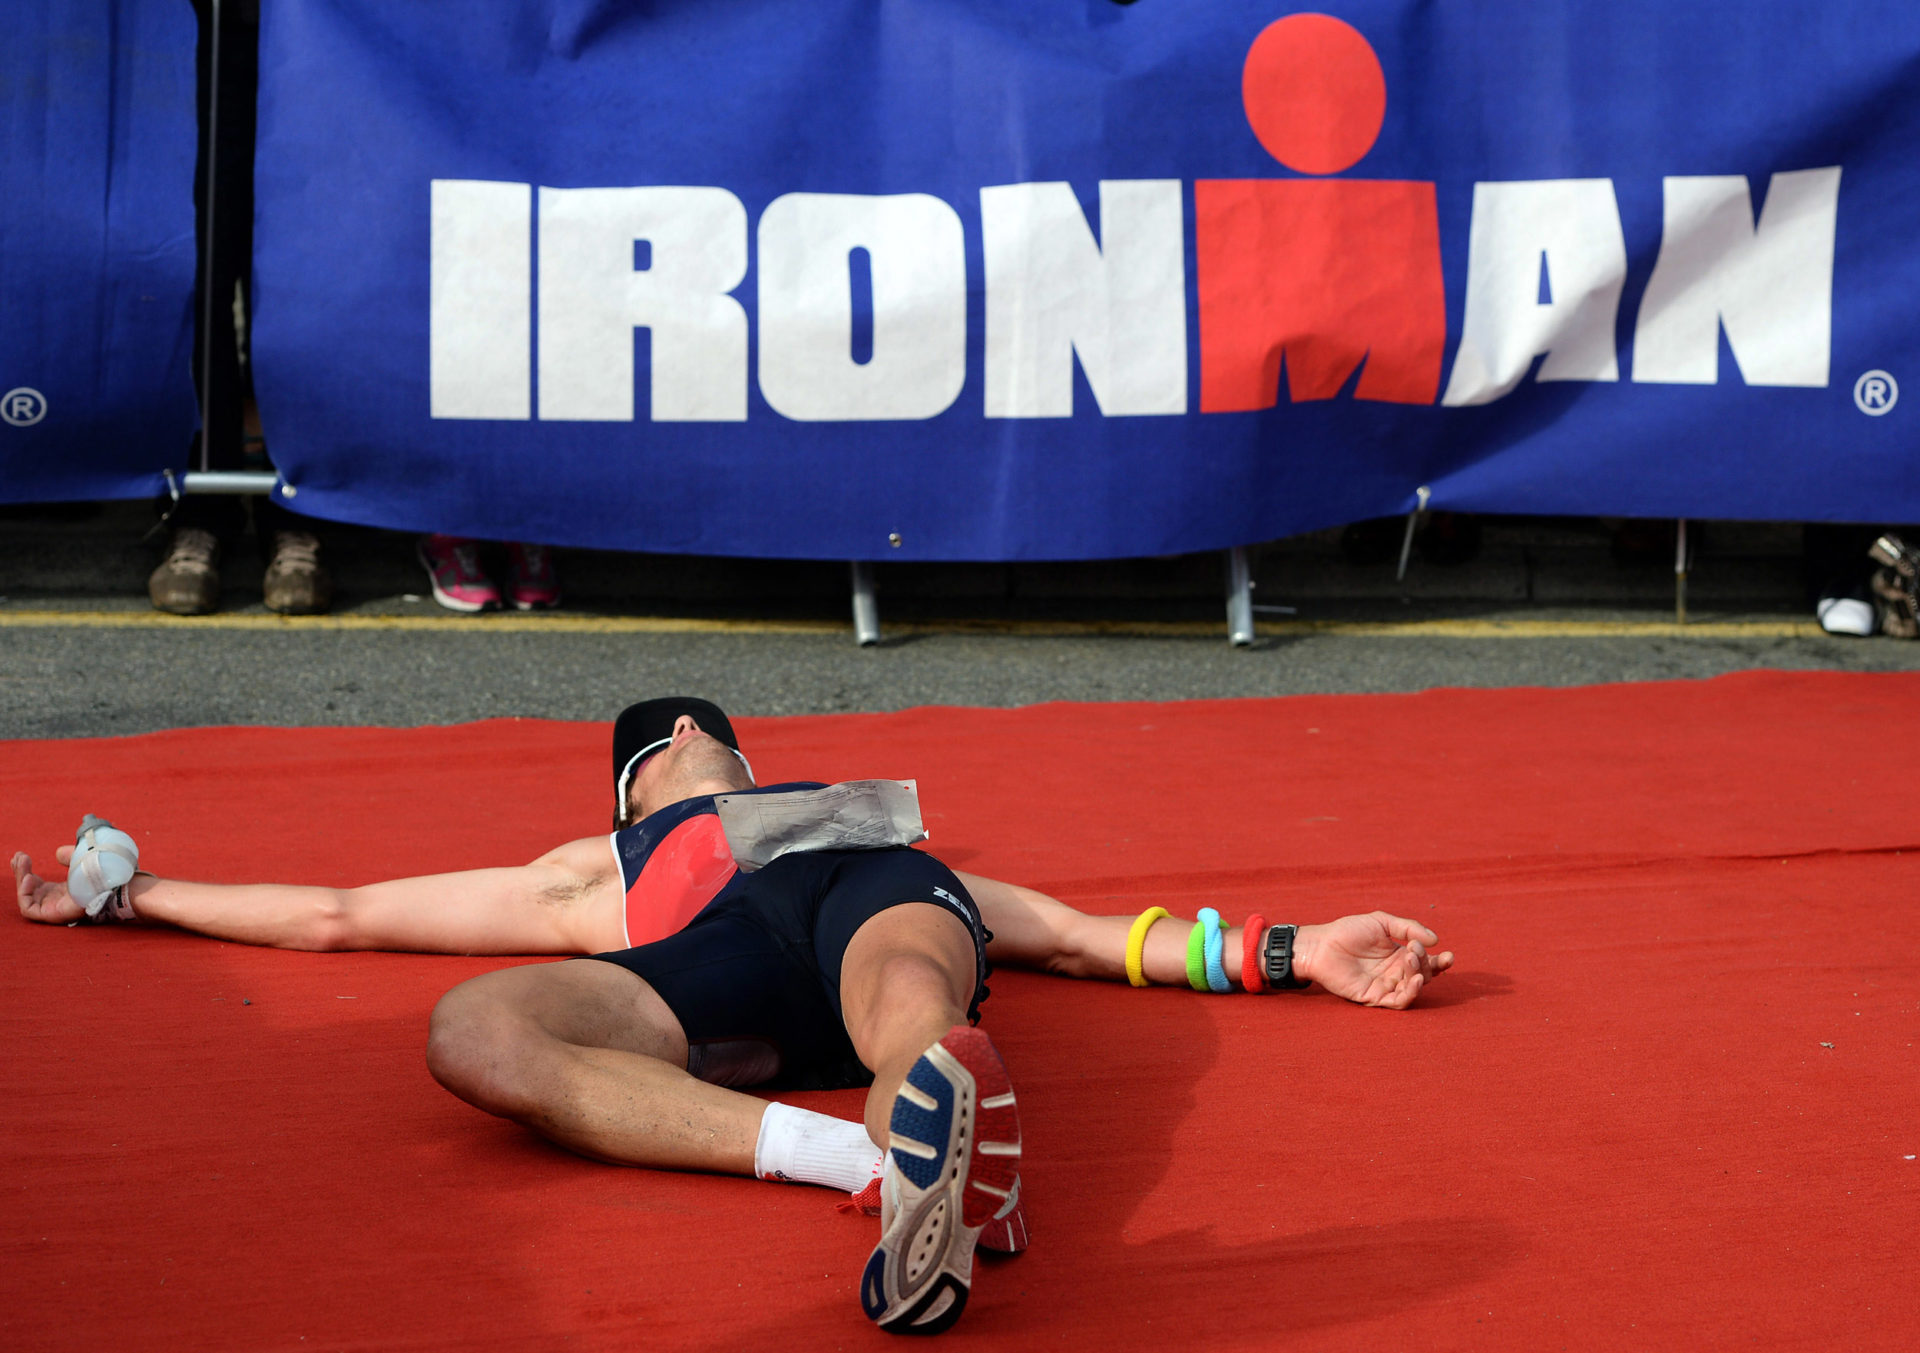 TENBY, WALES - SEPTEMBER 08: Sebastian Escola-Fasseur of France reacts after finishing Ironman Wales triathlon on September 8, 2013 in Tenby, Wales. (Photo by Nigel Roddis/Getty Images)